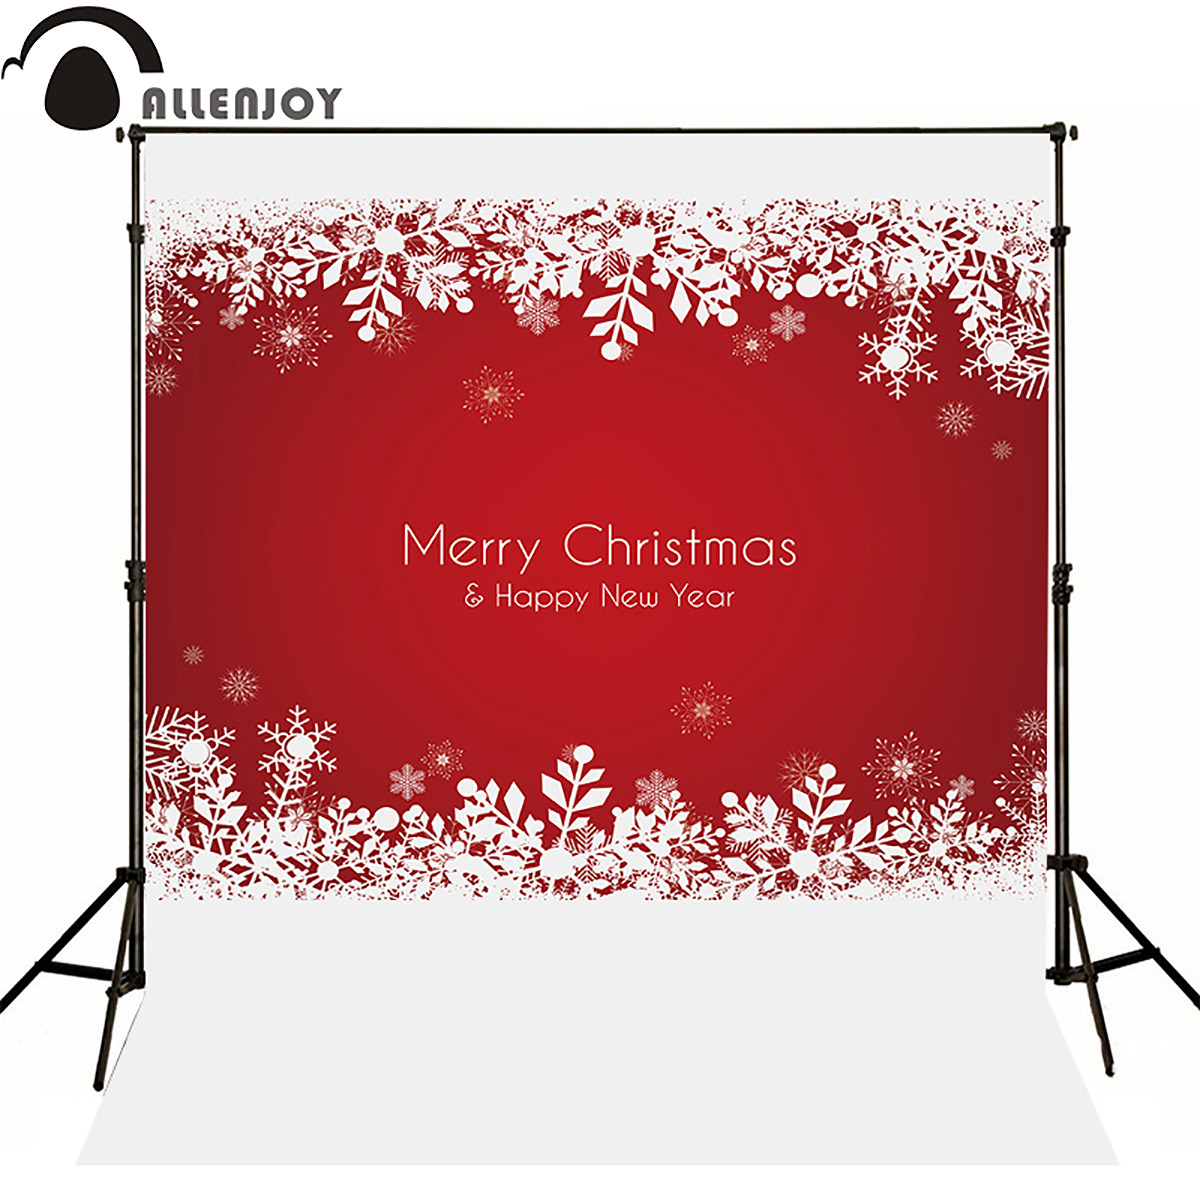 Allenjoy photography backdrops merry christmas new year winter red xmas snowflake newborn baby shower snow background photocall christmas photographic background snow snow in winter new year photo vinyl cloth year of the rooster